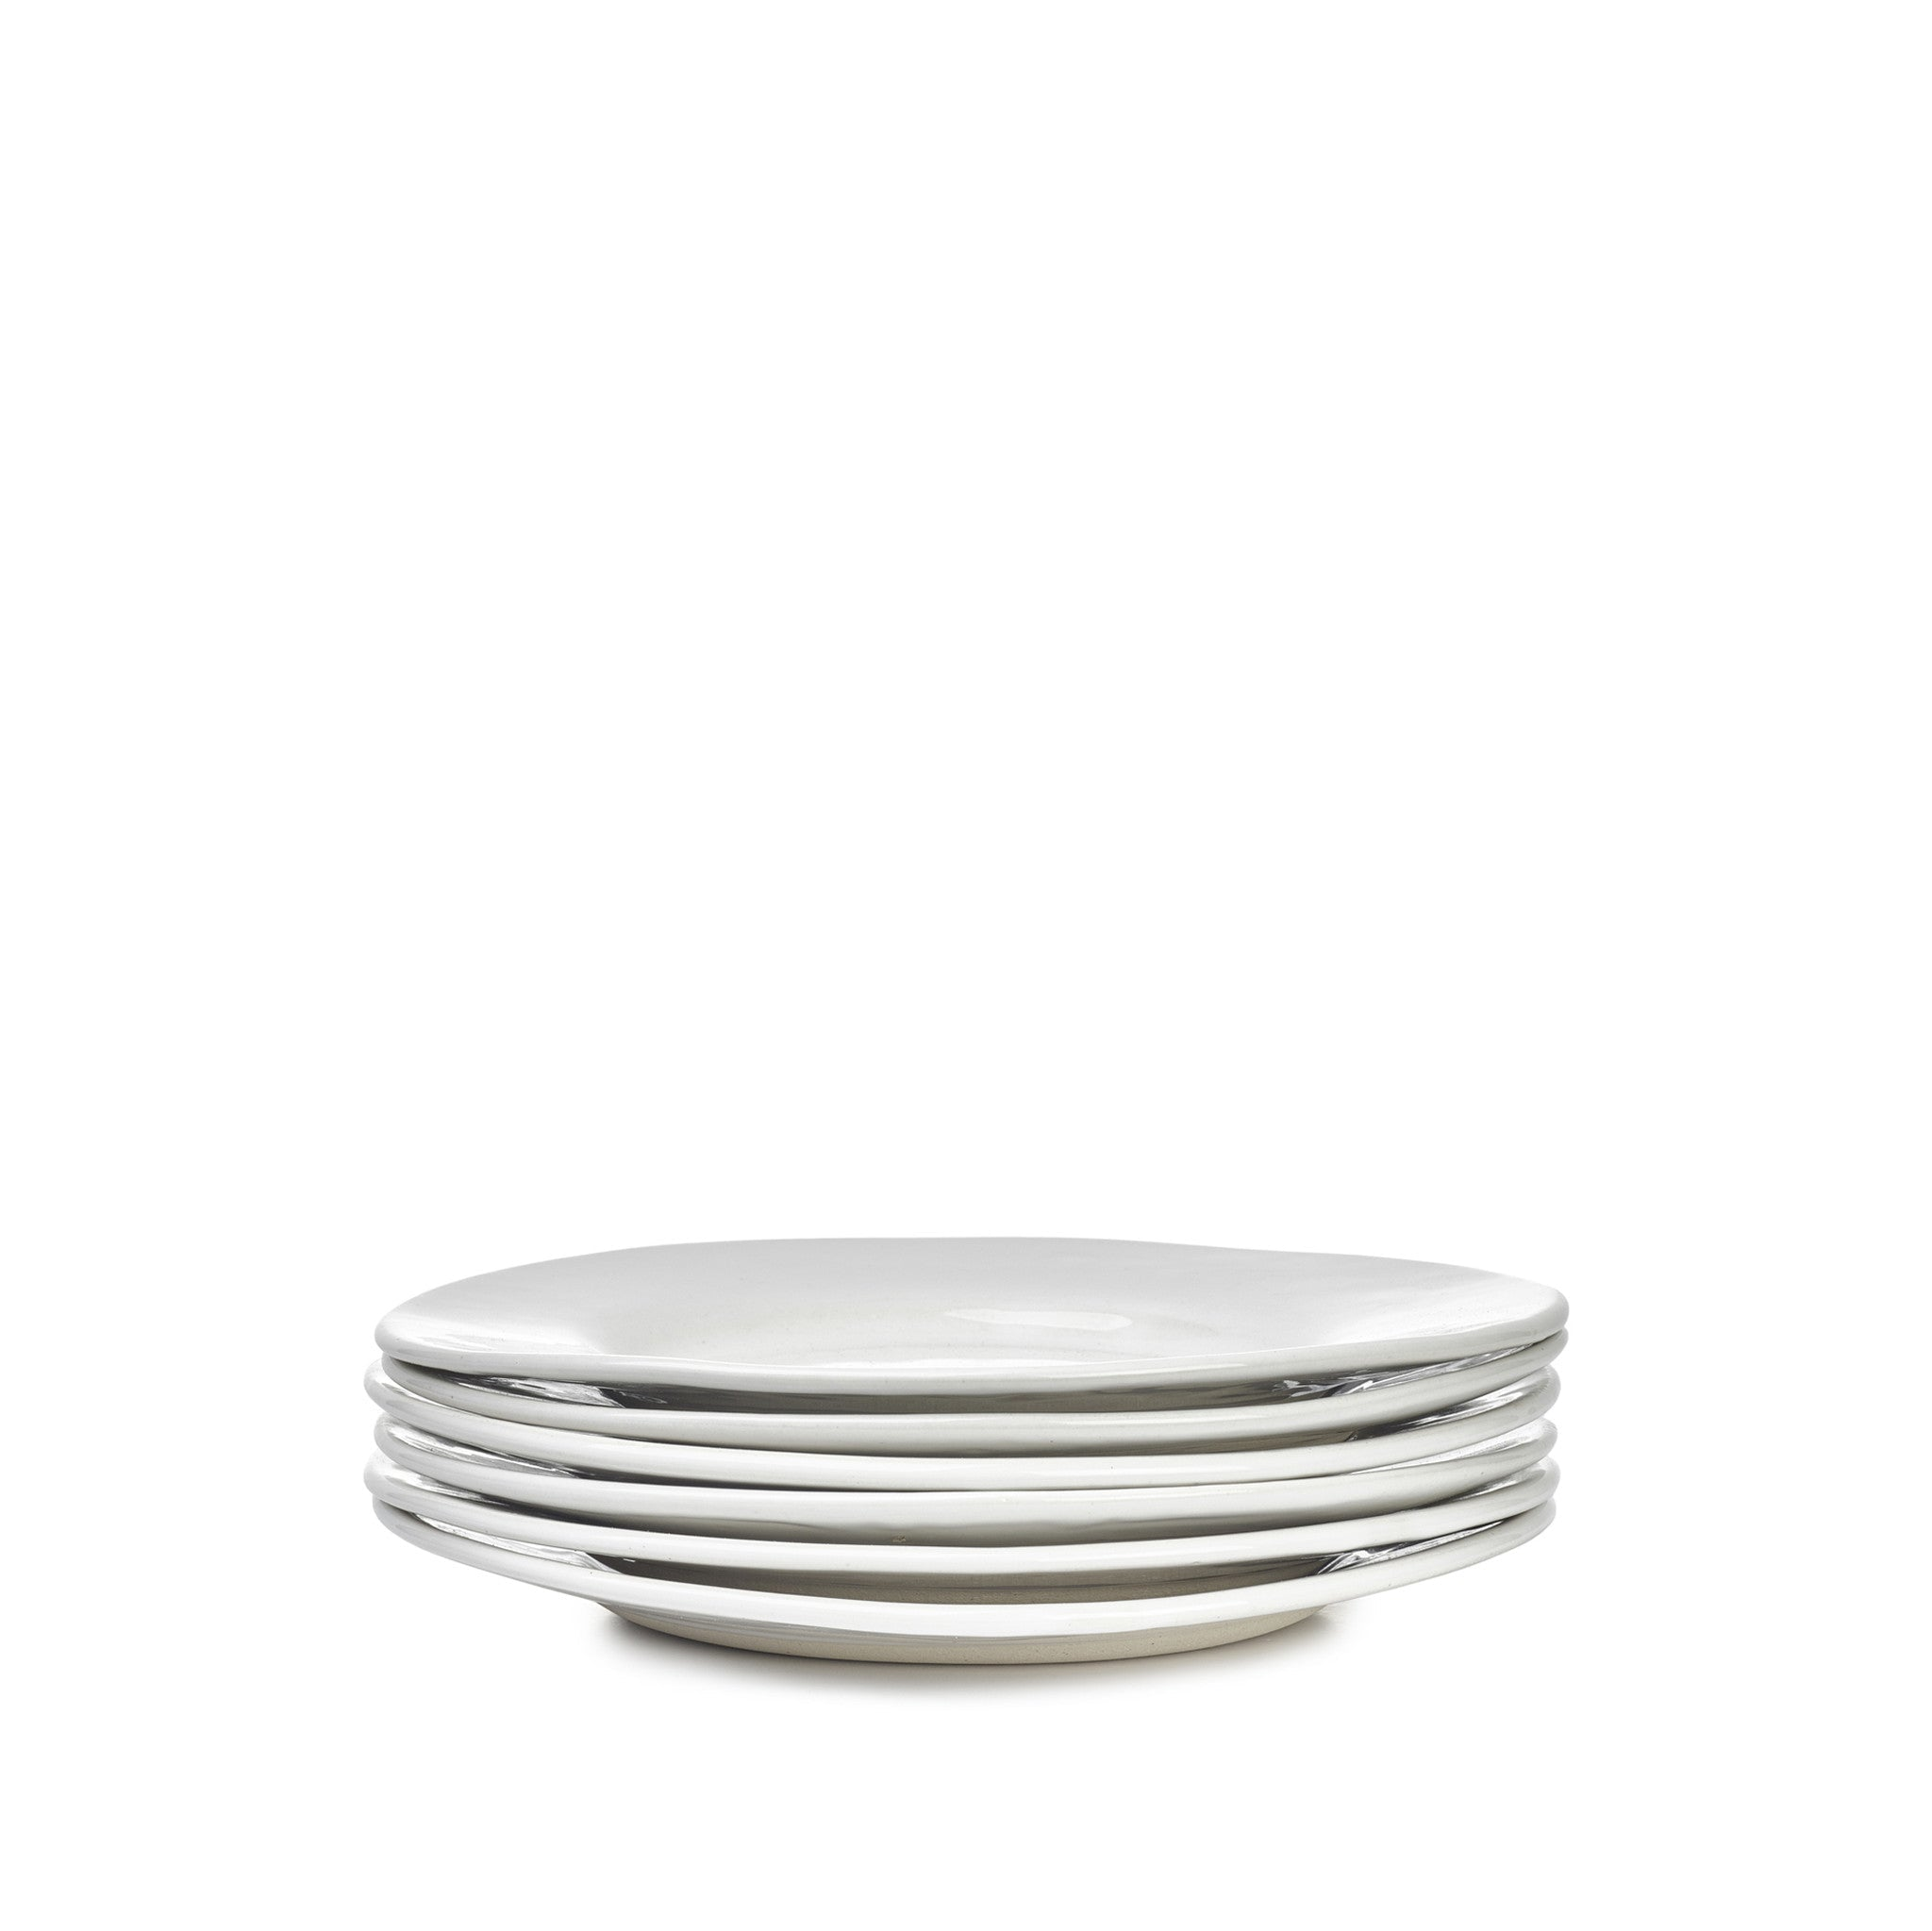 Wonki Ware Small Side Plate in White, 19cm